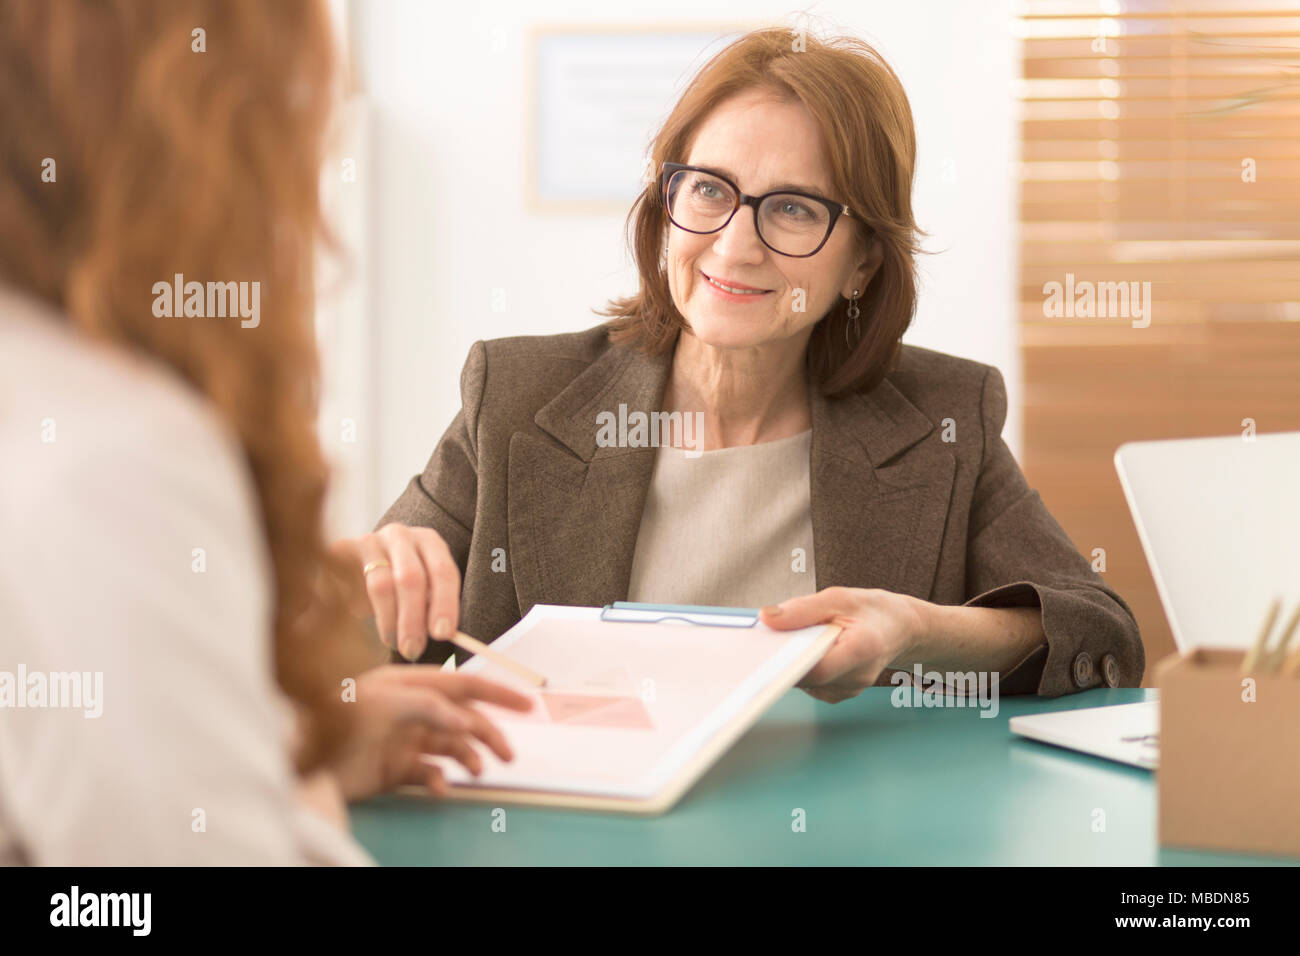 Professional advisor working with burnt out corporate employee Stock Photo